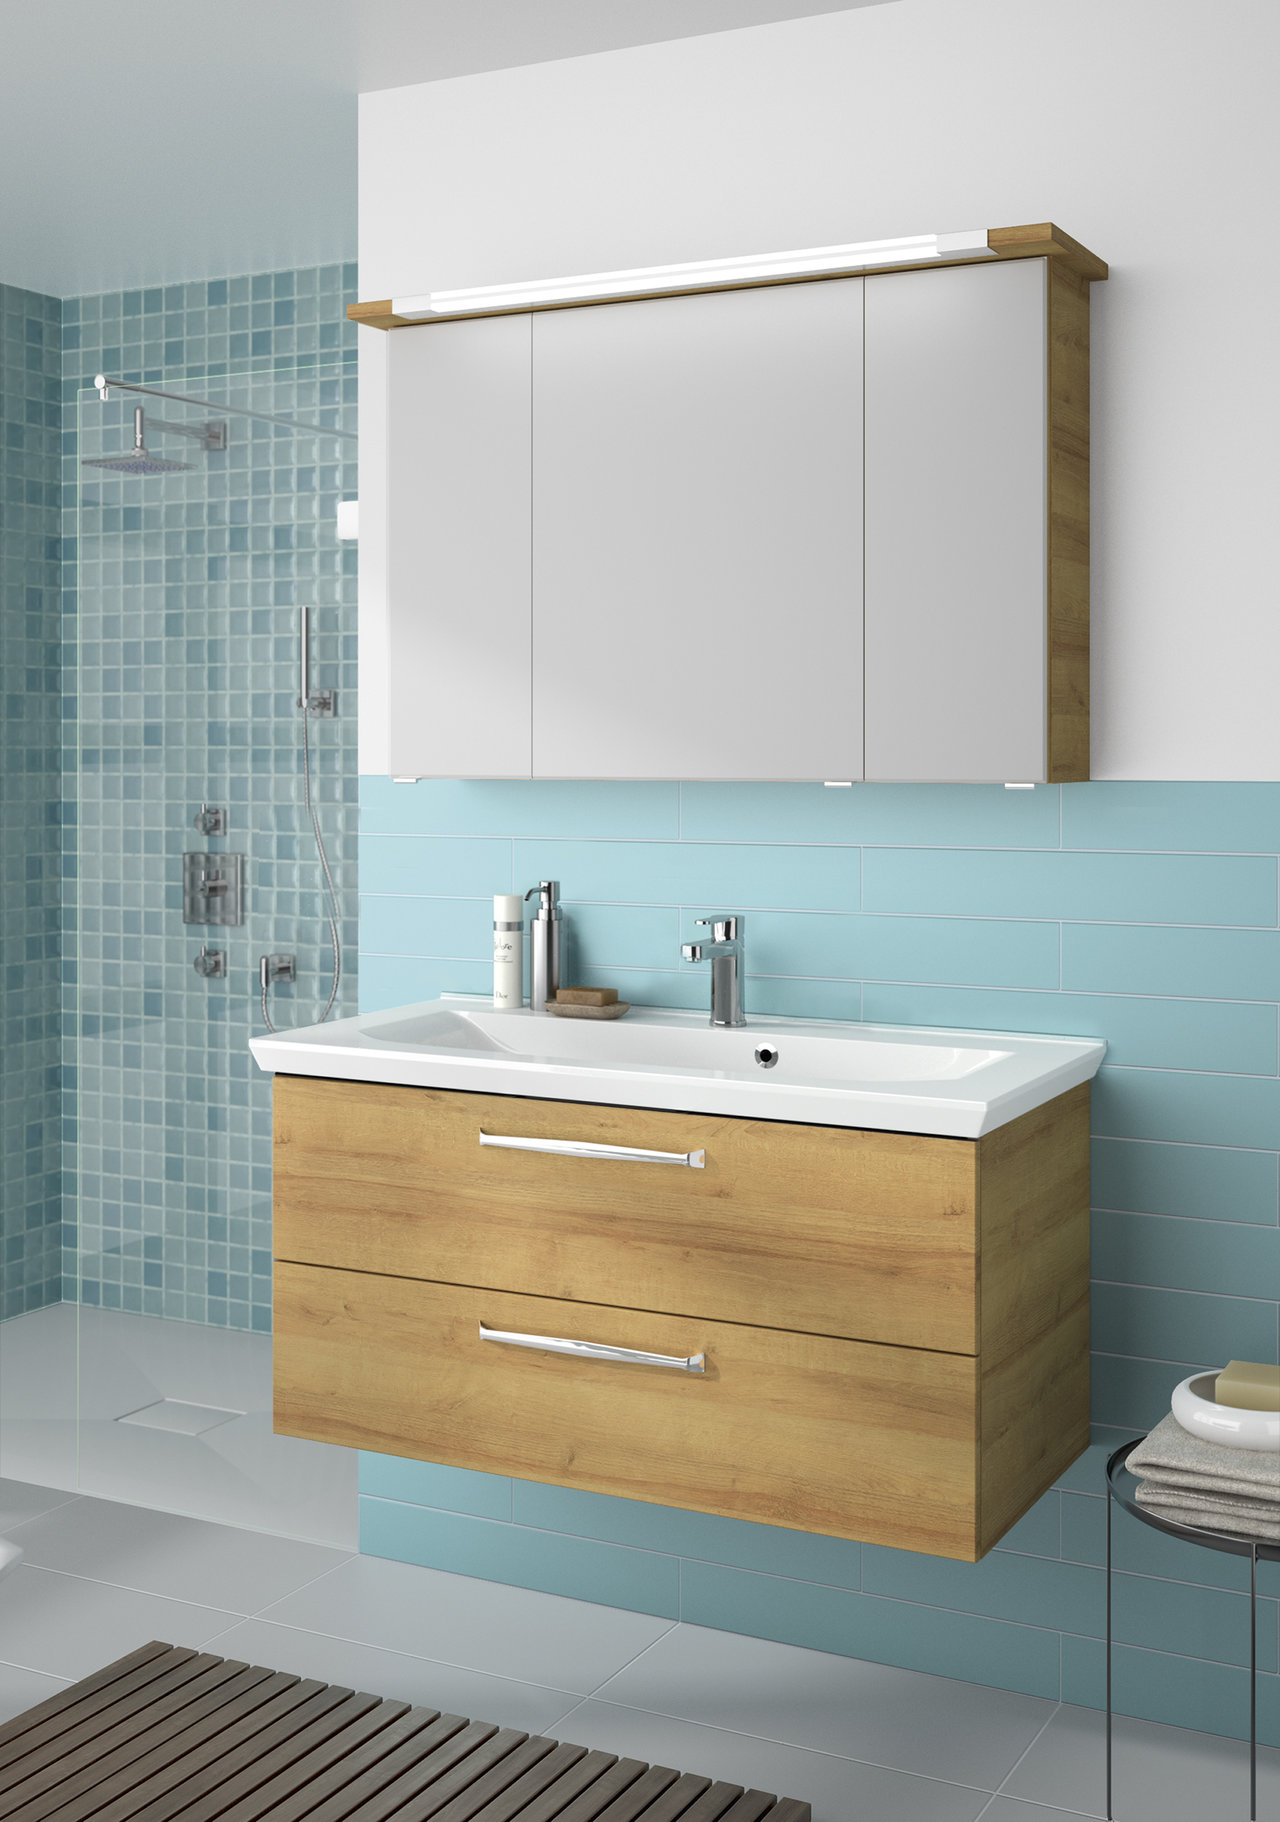 Pelipal Pcon Trentino Fokus Bathroom Furniture Brands Furniture By Pelipal